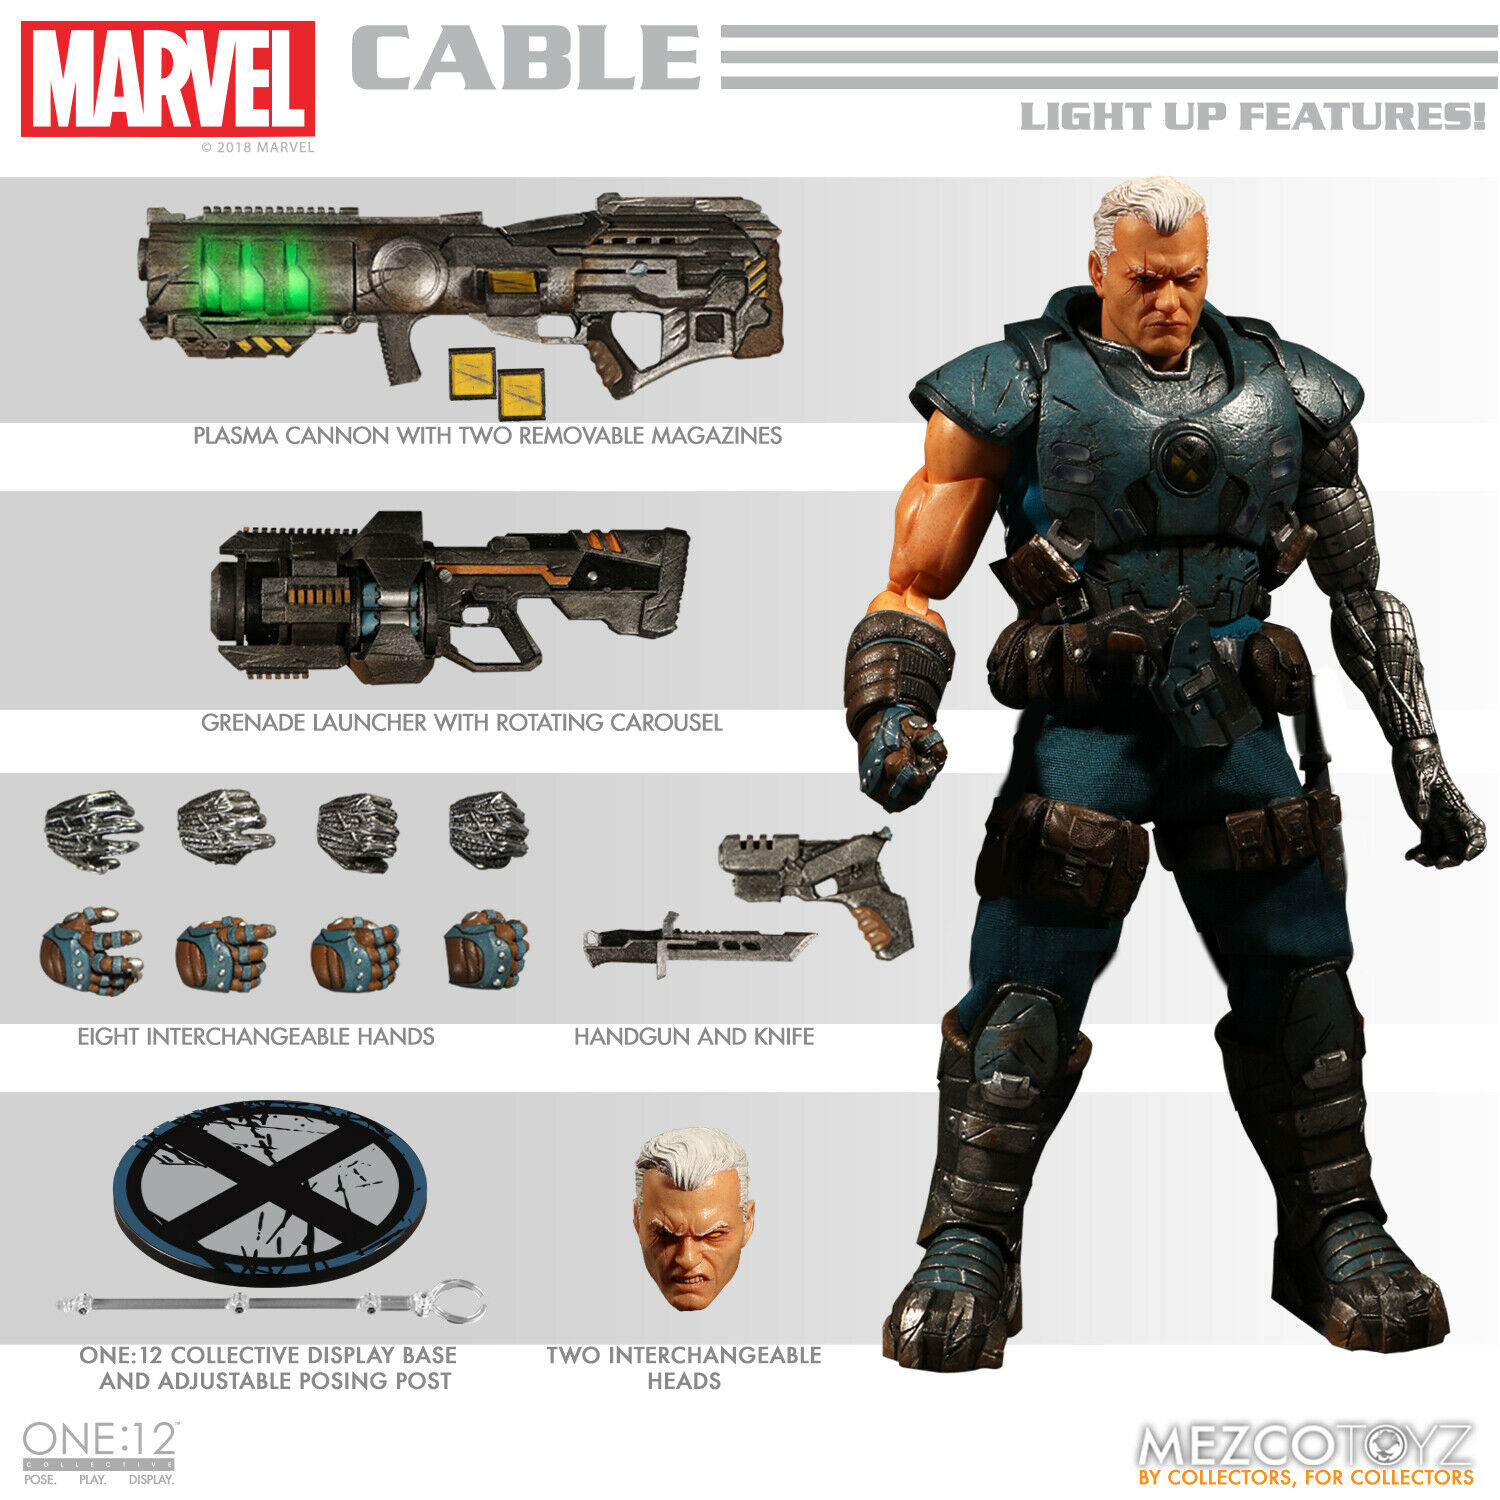 Mezco One 12 Collective Marvel Cable Action Figure NEW